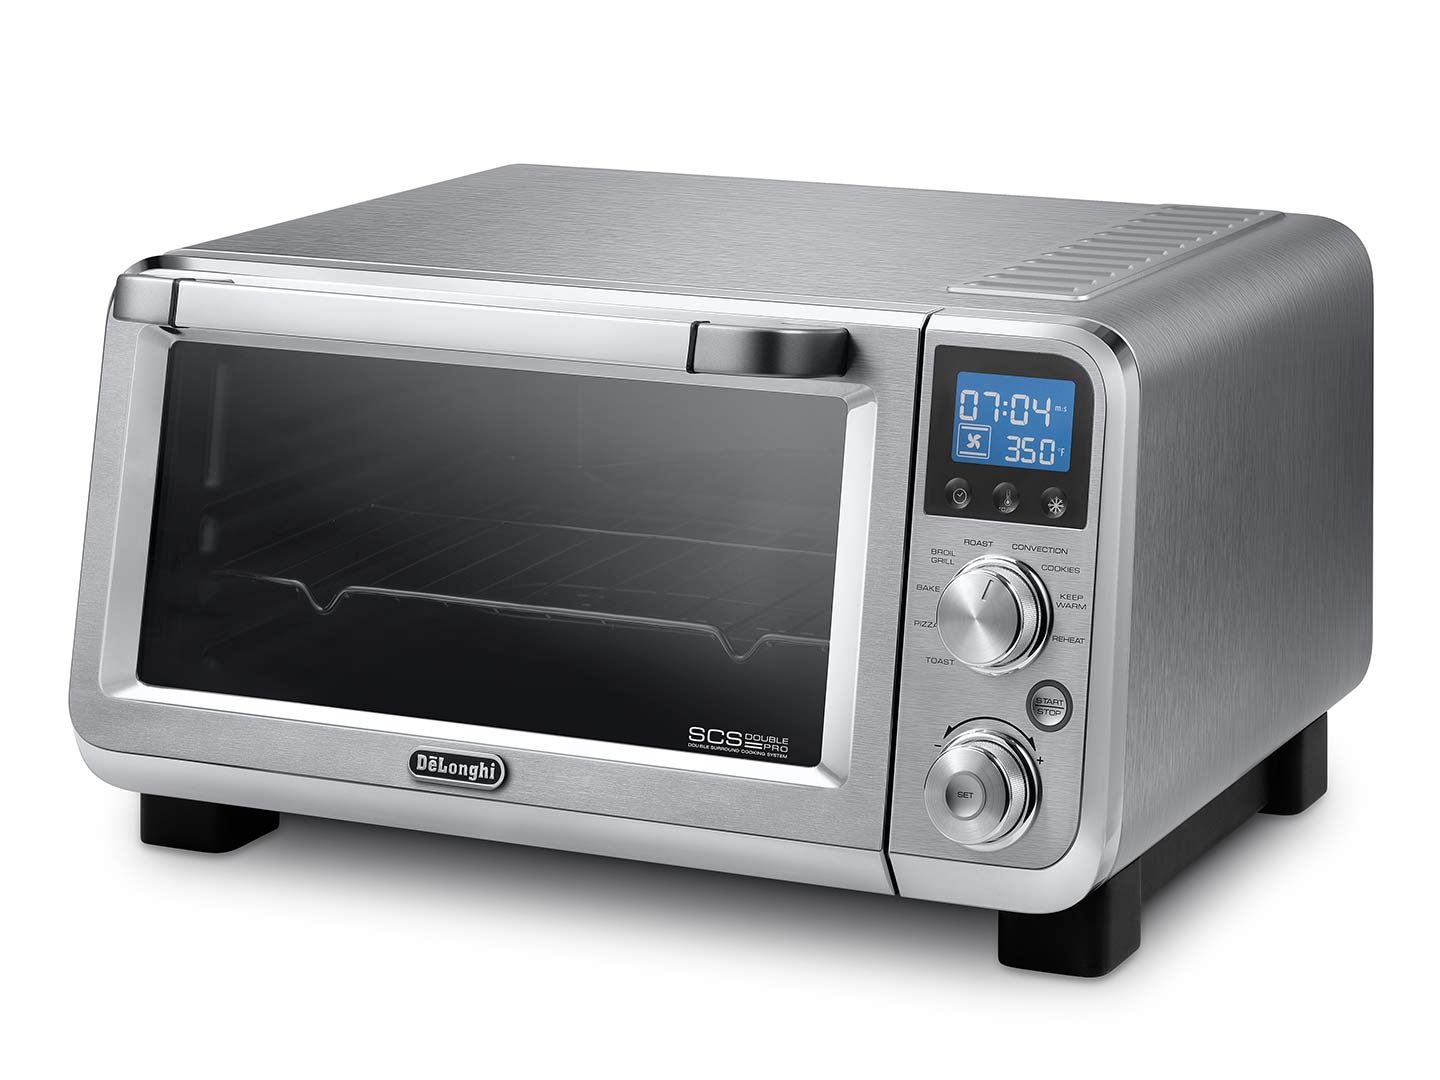 Livenza Digital Compact Convection Oven 0.5 cu ft. -  - EO141150M